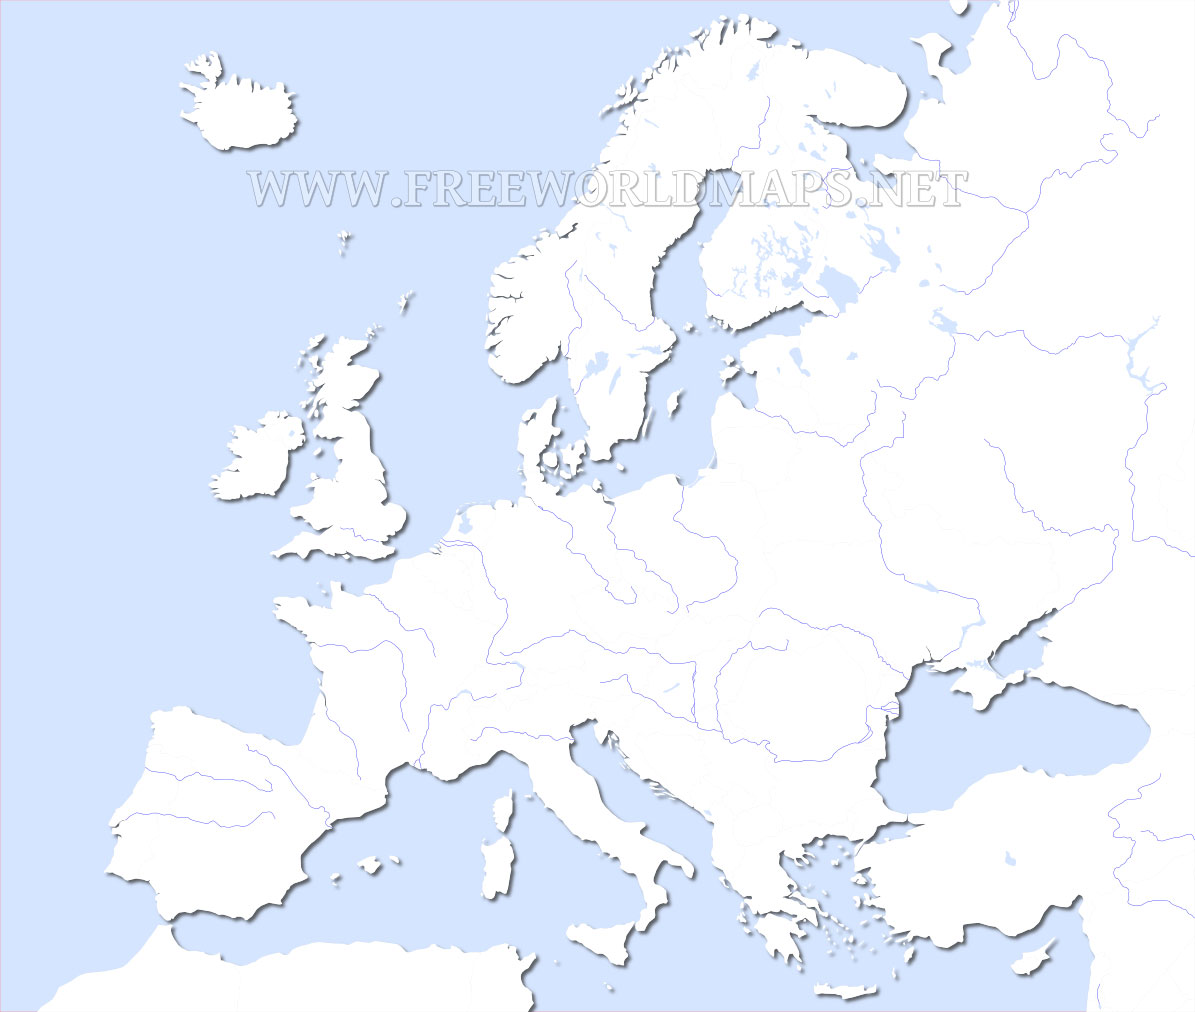 Blank Outline Map Of Europe With Rivers